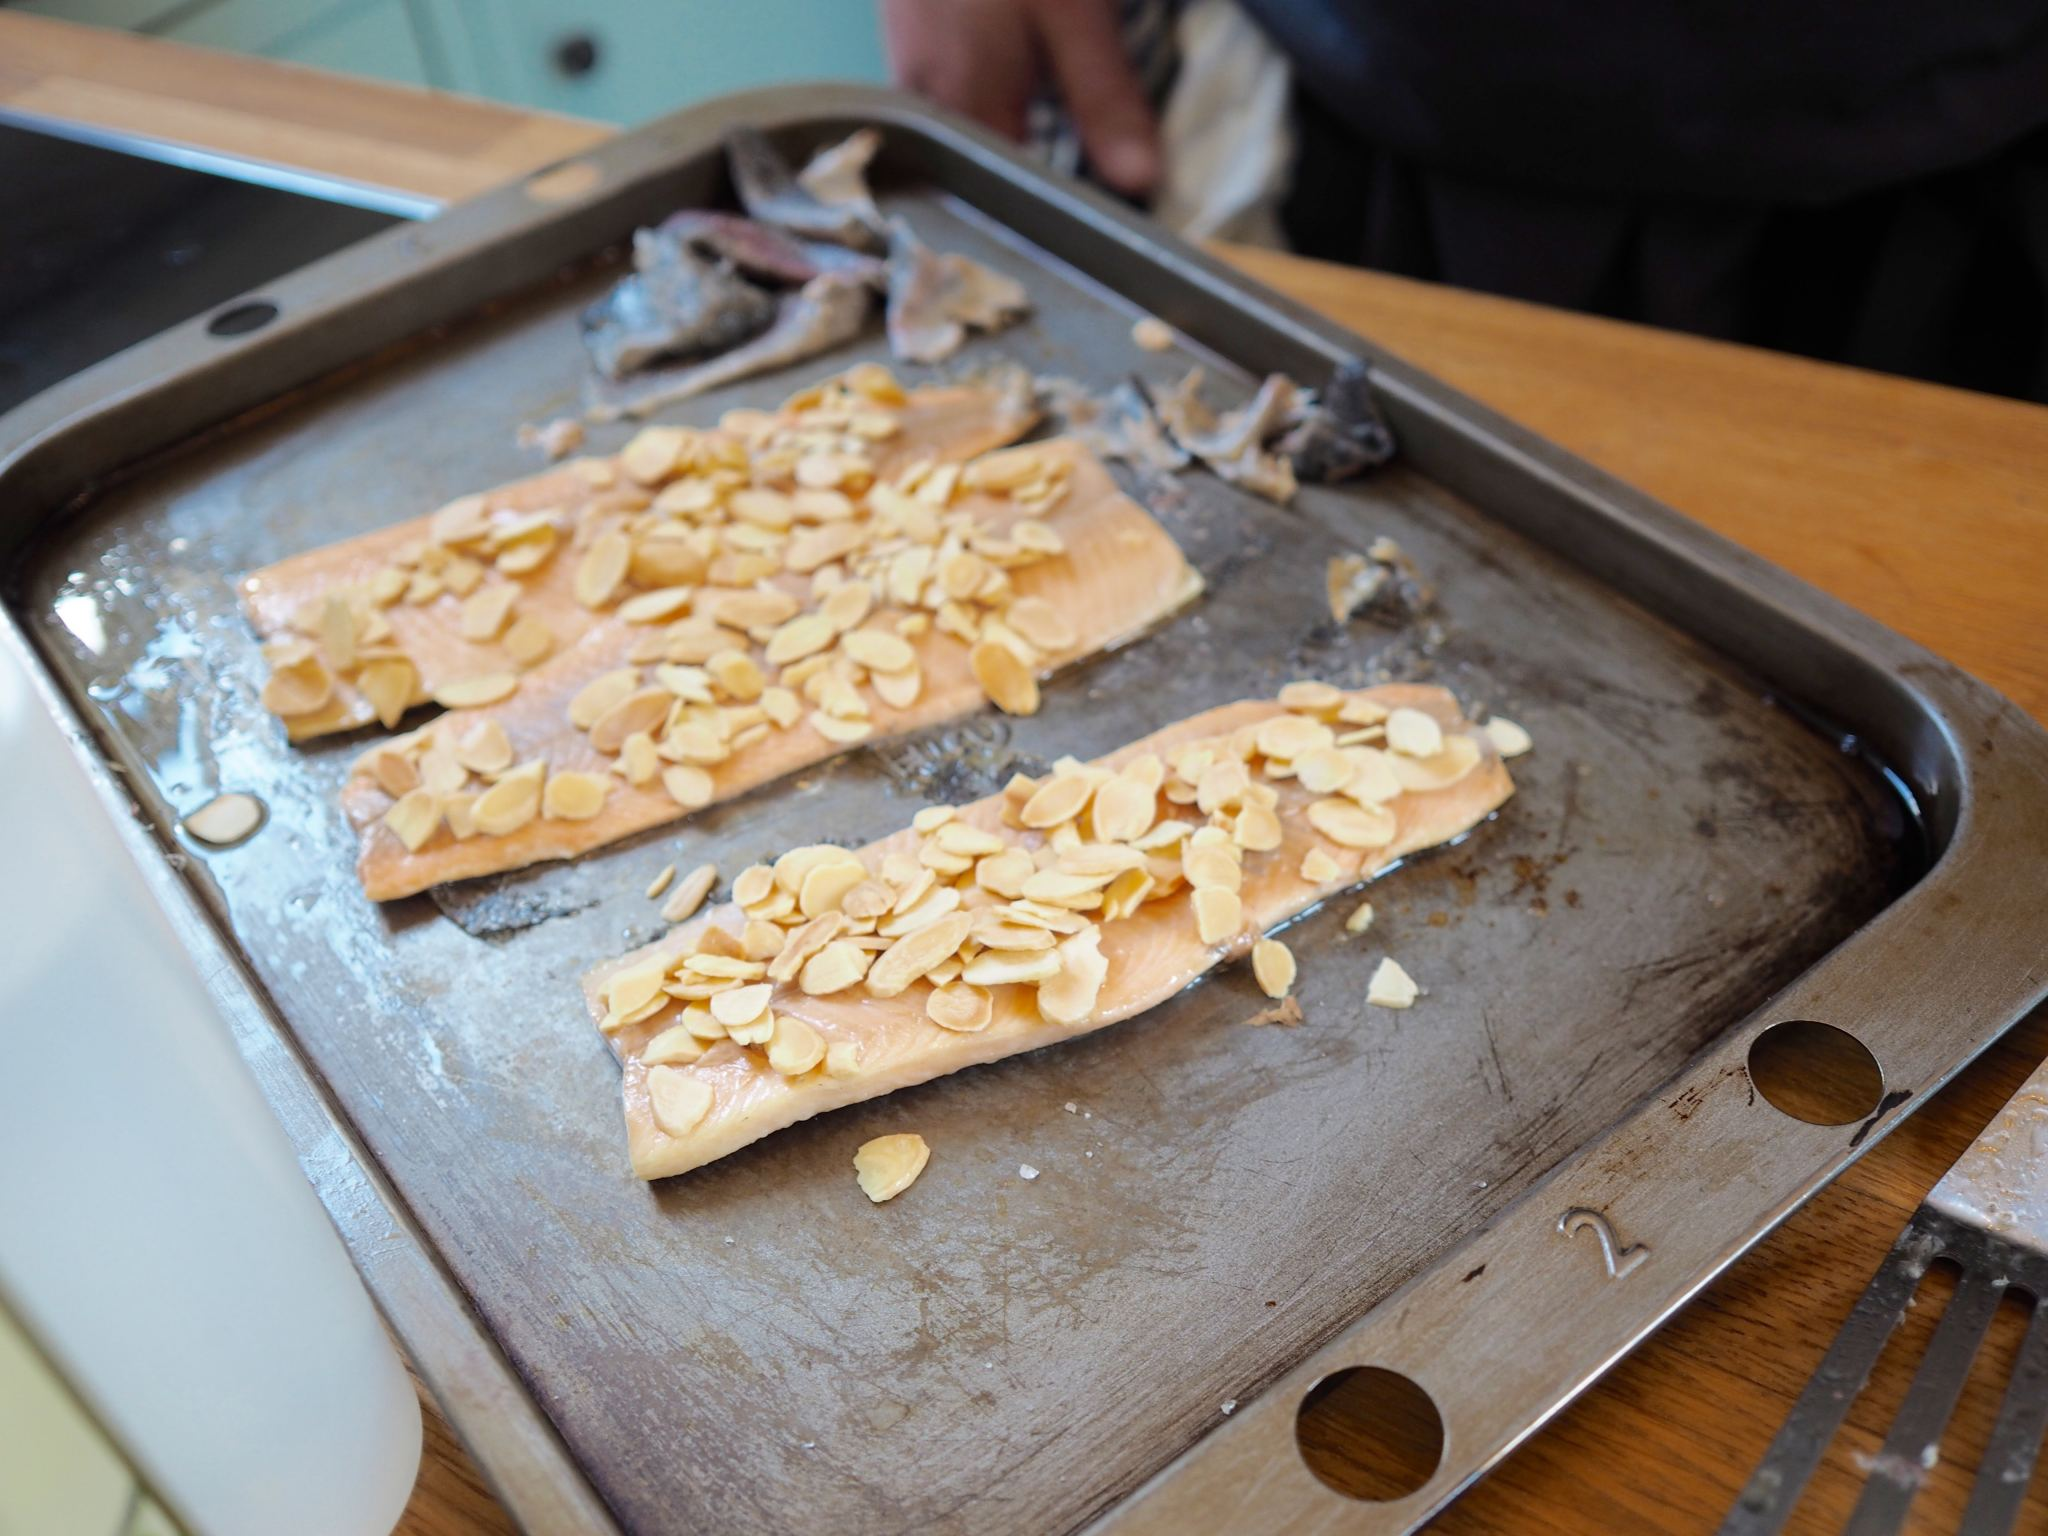 Chelsea Iceland School of fish cooking school neil nugent almonds